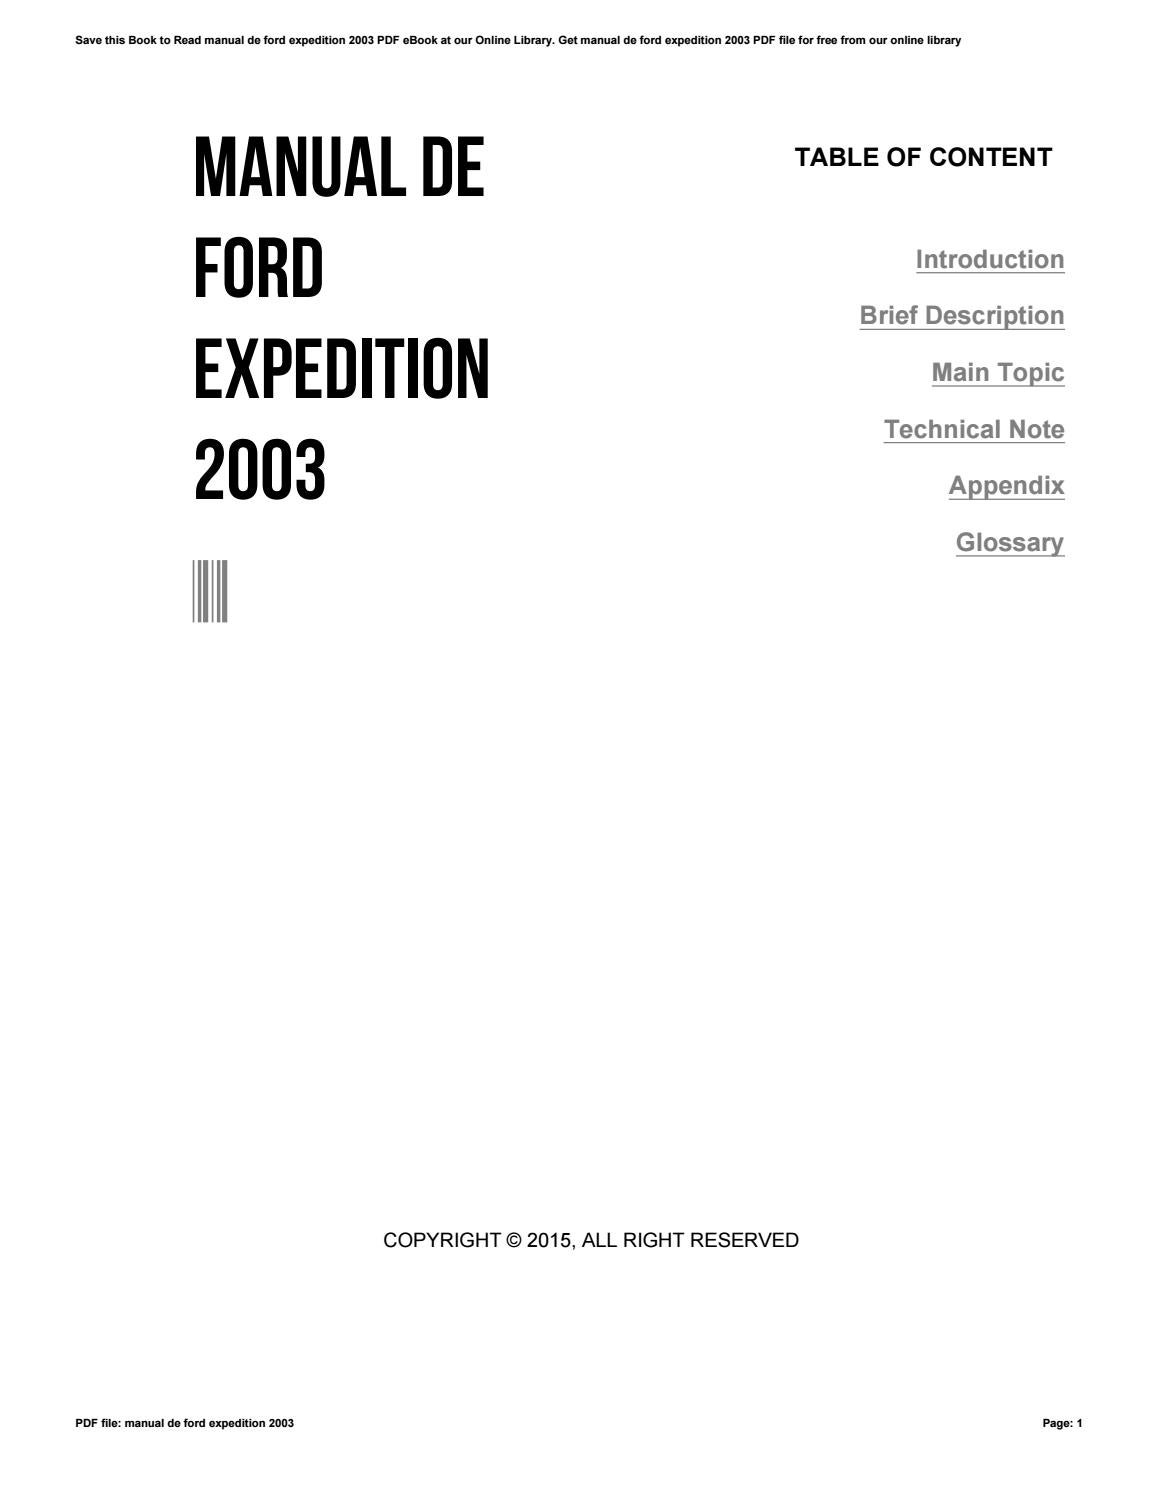 2003 Ford Expedition Manual Book Mountaineer And Explorer 4 Door Wiring Diagram Original De I Issuu 1156x1496